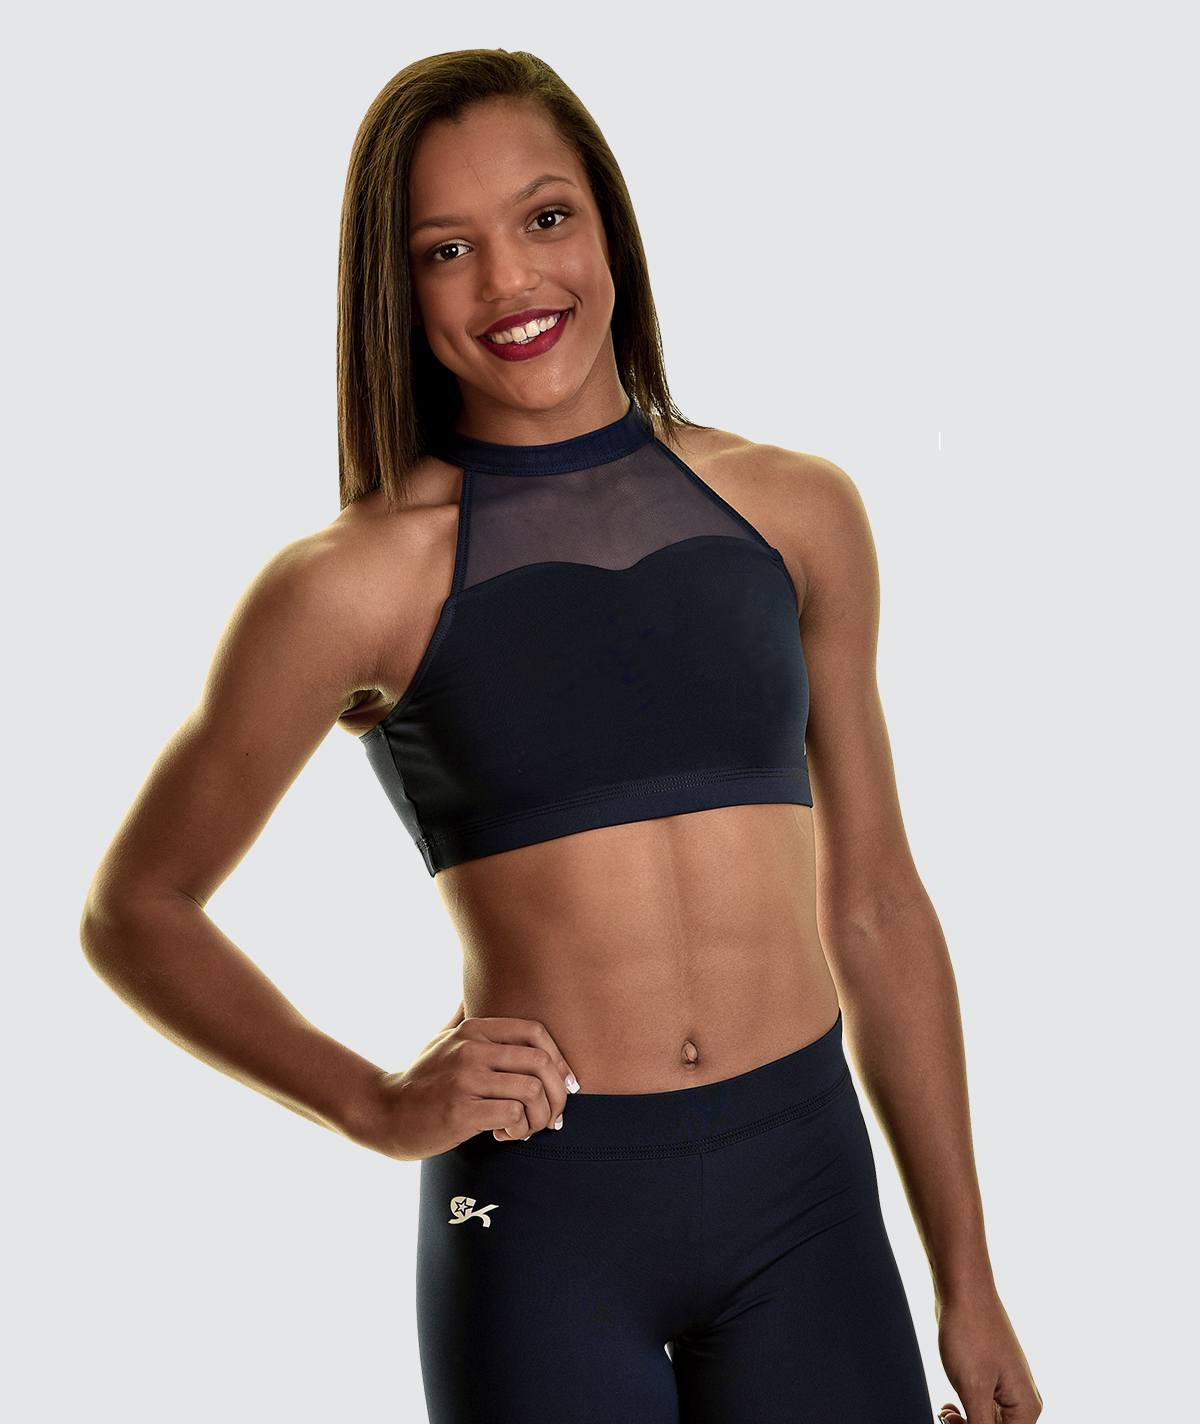 GK All Star Sweet Key Crop Top